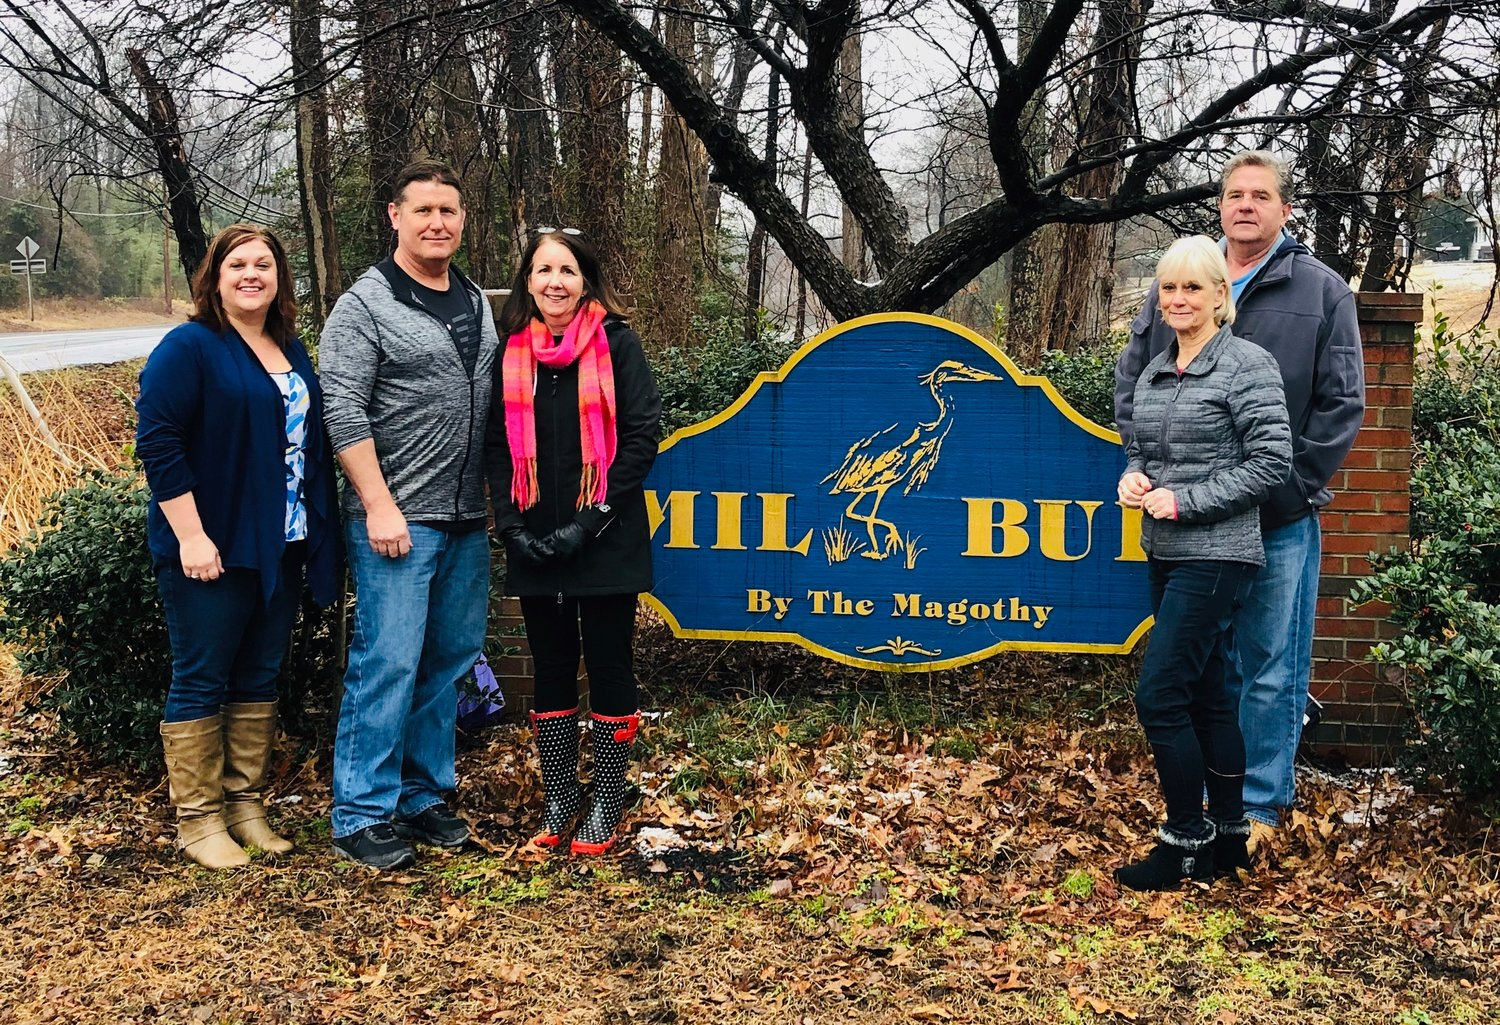 Megan Tuozzo, Glenn Clayville, Denise Pirone, Cindy Ruskey and David Ruskey are proud to call Mil-Bur home.